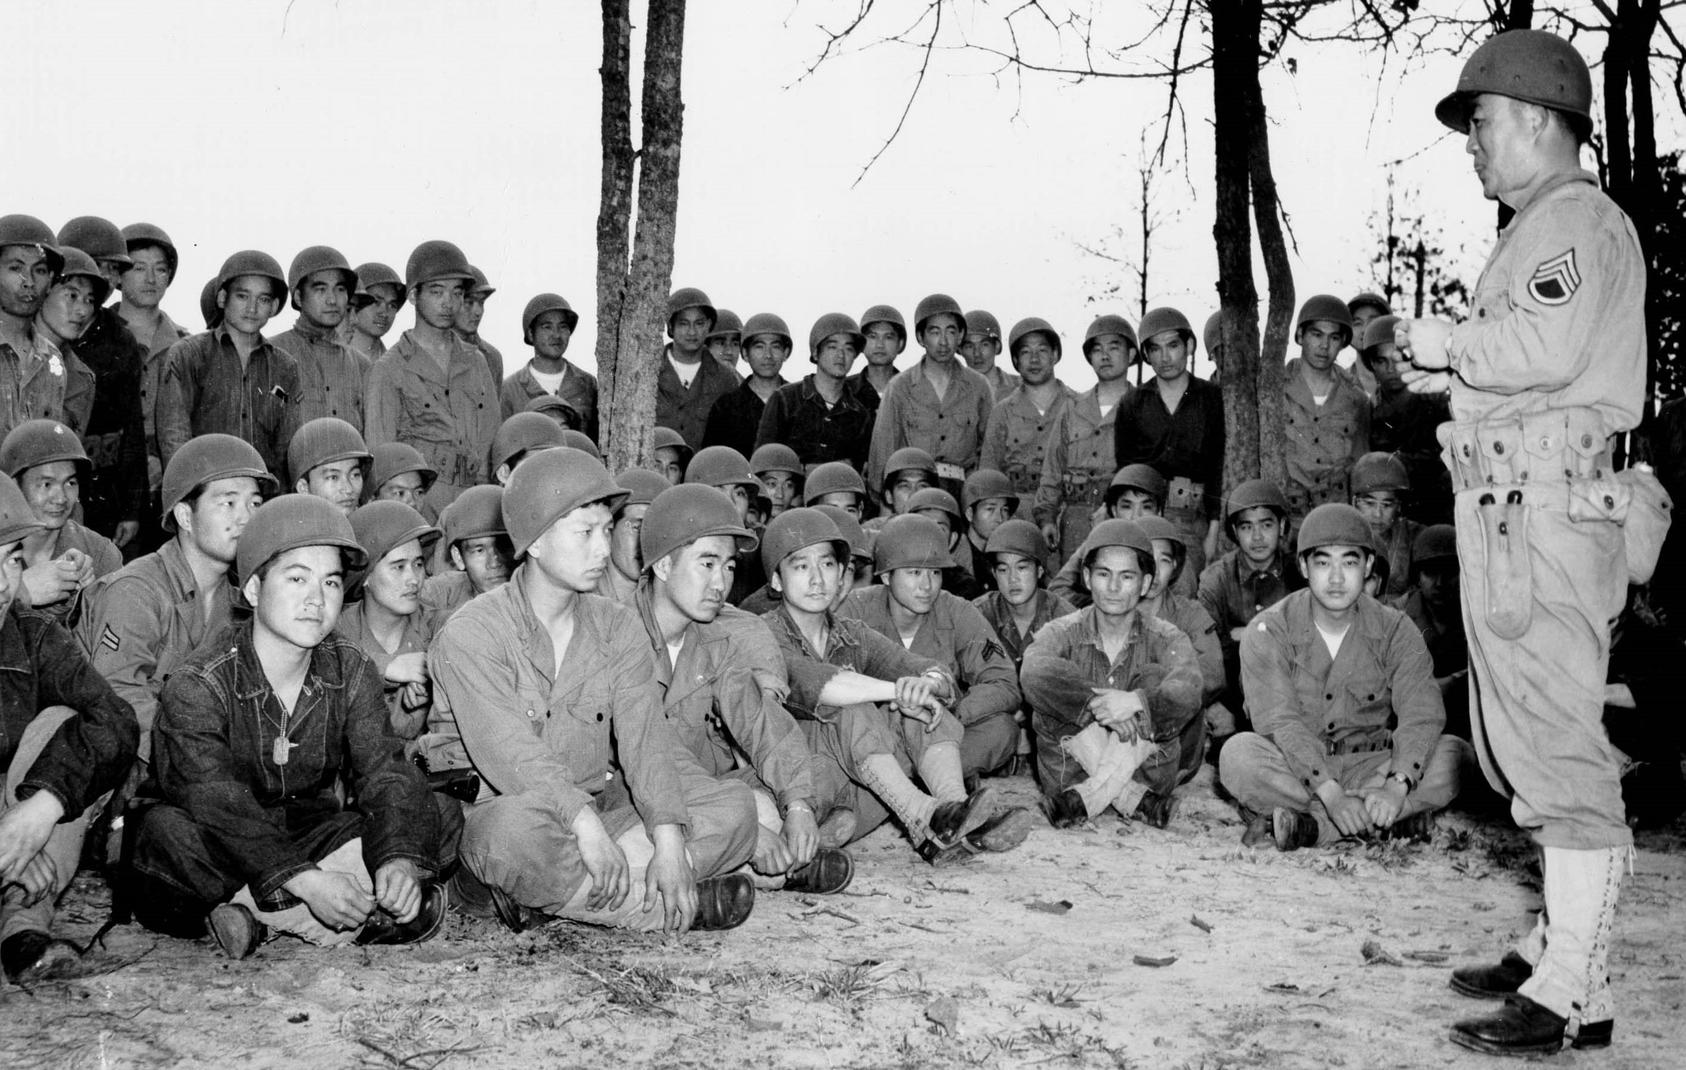 Japanese-American troops of the Army's 100th Infantry Battalion gather during training in 1943. Lieutenant Spark Matsunaga helped lead the battalion into World War II combat in Italy. (U.S. Army)